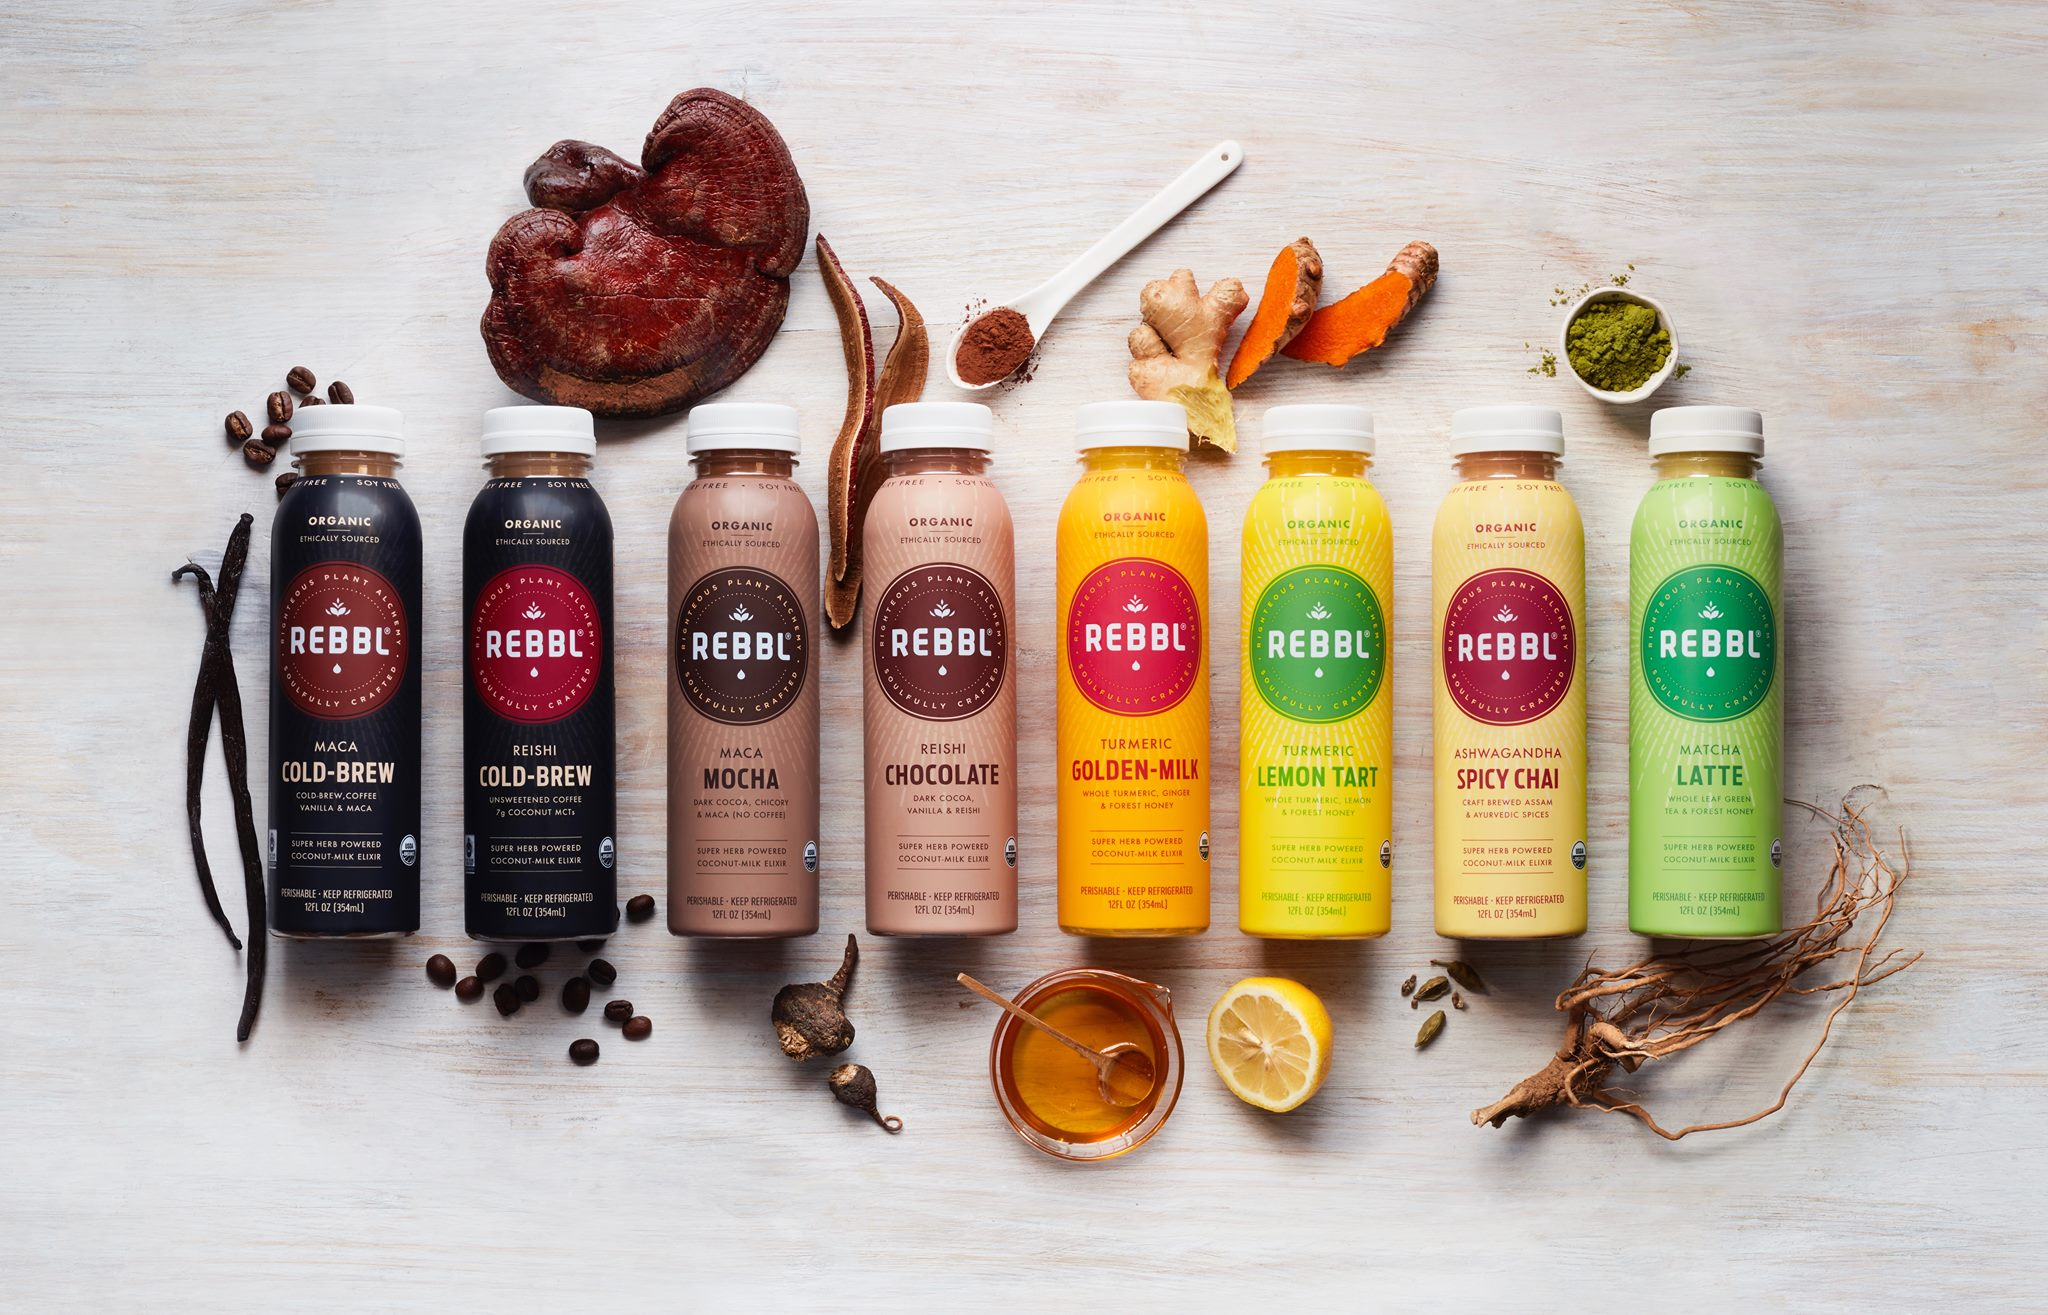 Rebbl   REBBL exists to bring you the highest quality ingredients, with herbal adaptogens at truly meaningful levels, to help you achieve your optimum state of wellness.